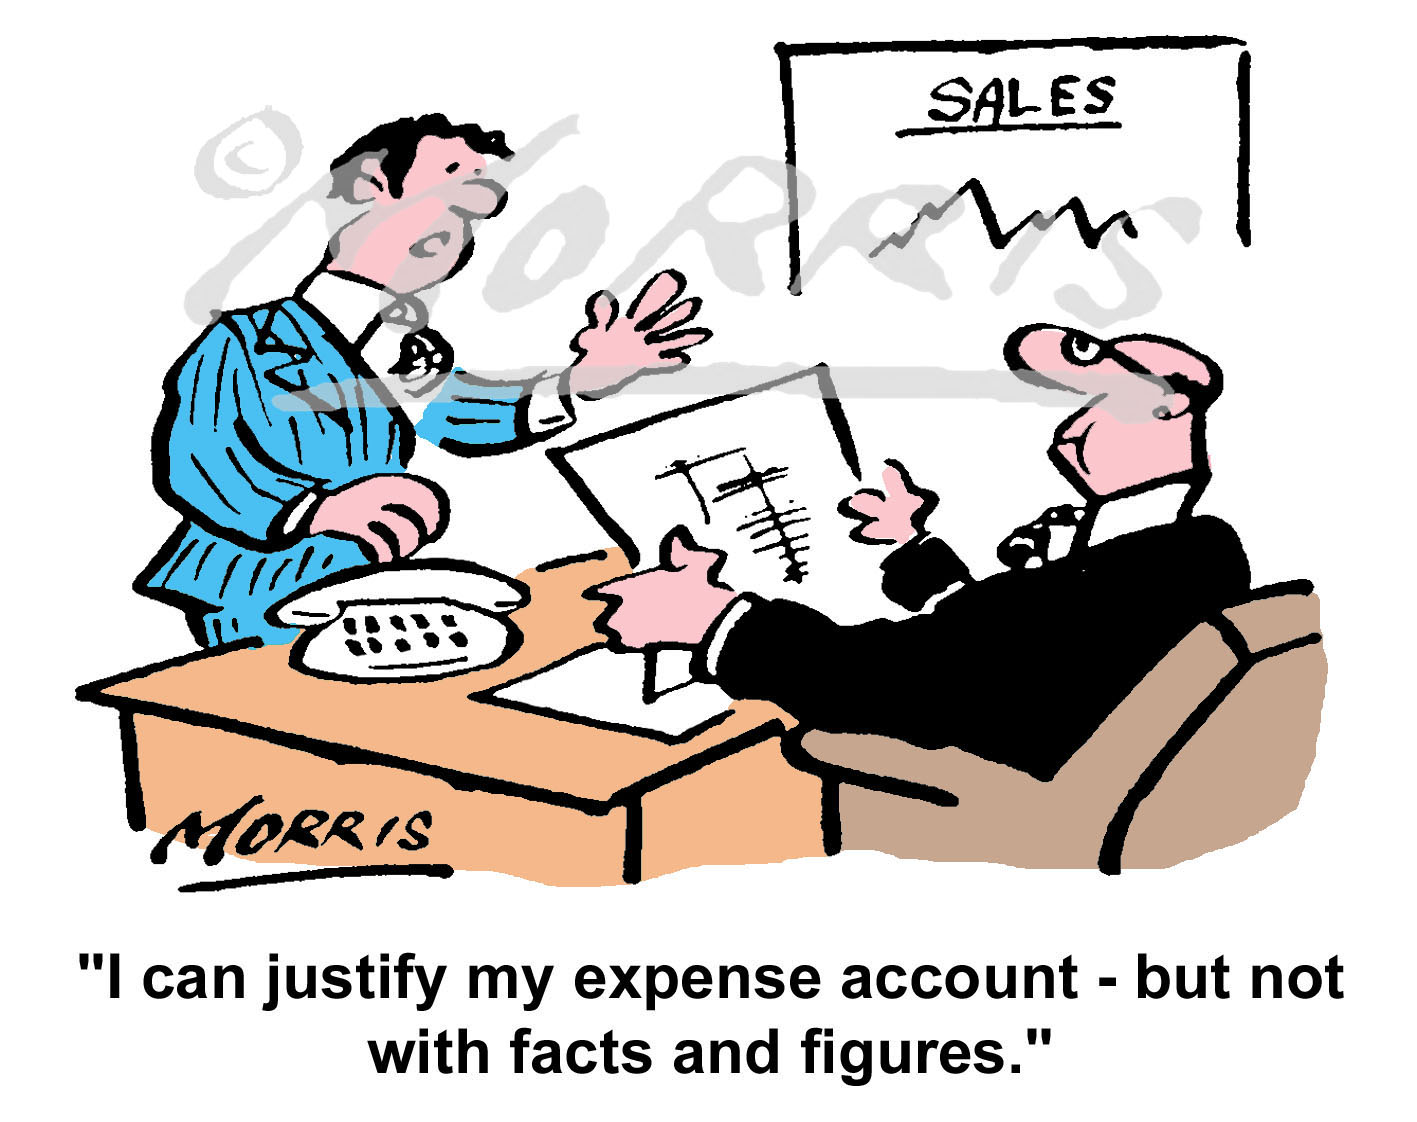 Business expense account cartoon Ref: 4311col